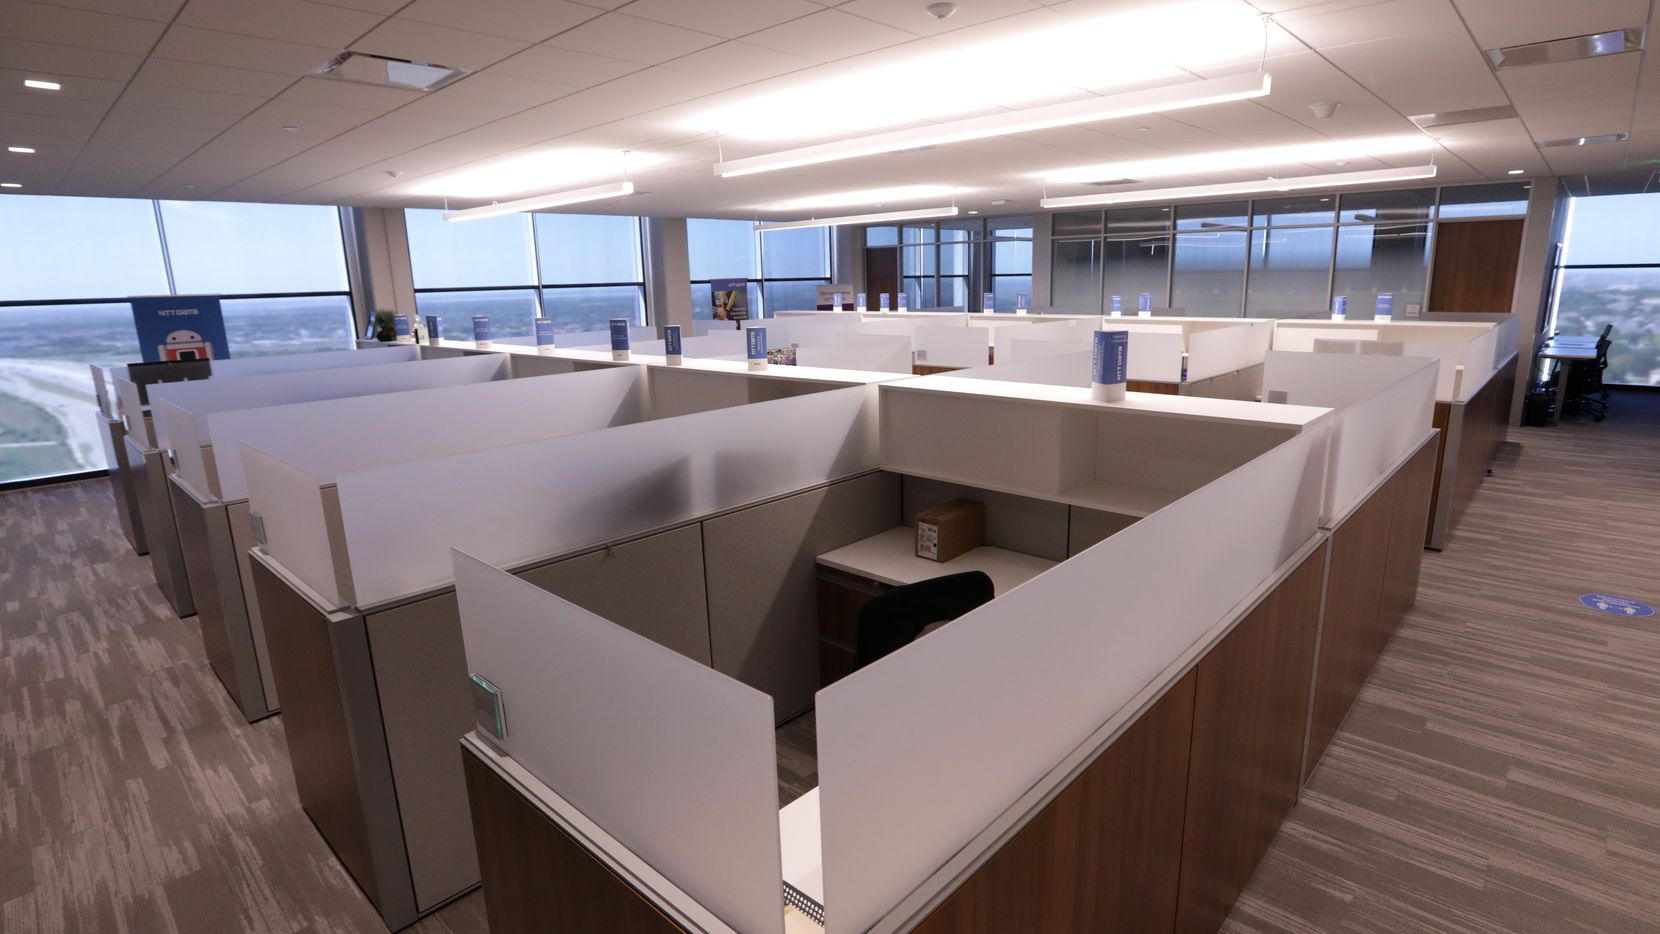 """The offices of NTT Data Services in Plano have been mostly empty during the pandemic, and when they reopen, employees can elect to come into the office or work at home. """"We're really focused on empowering the worker in those situations,"""" said Eric Clark, chief digital and strategy officer."""